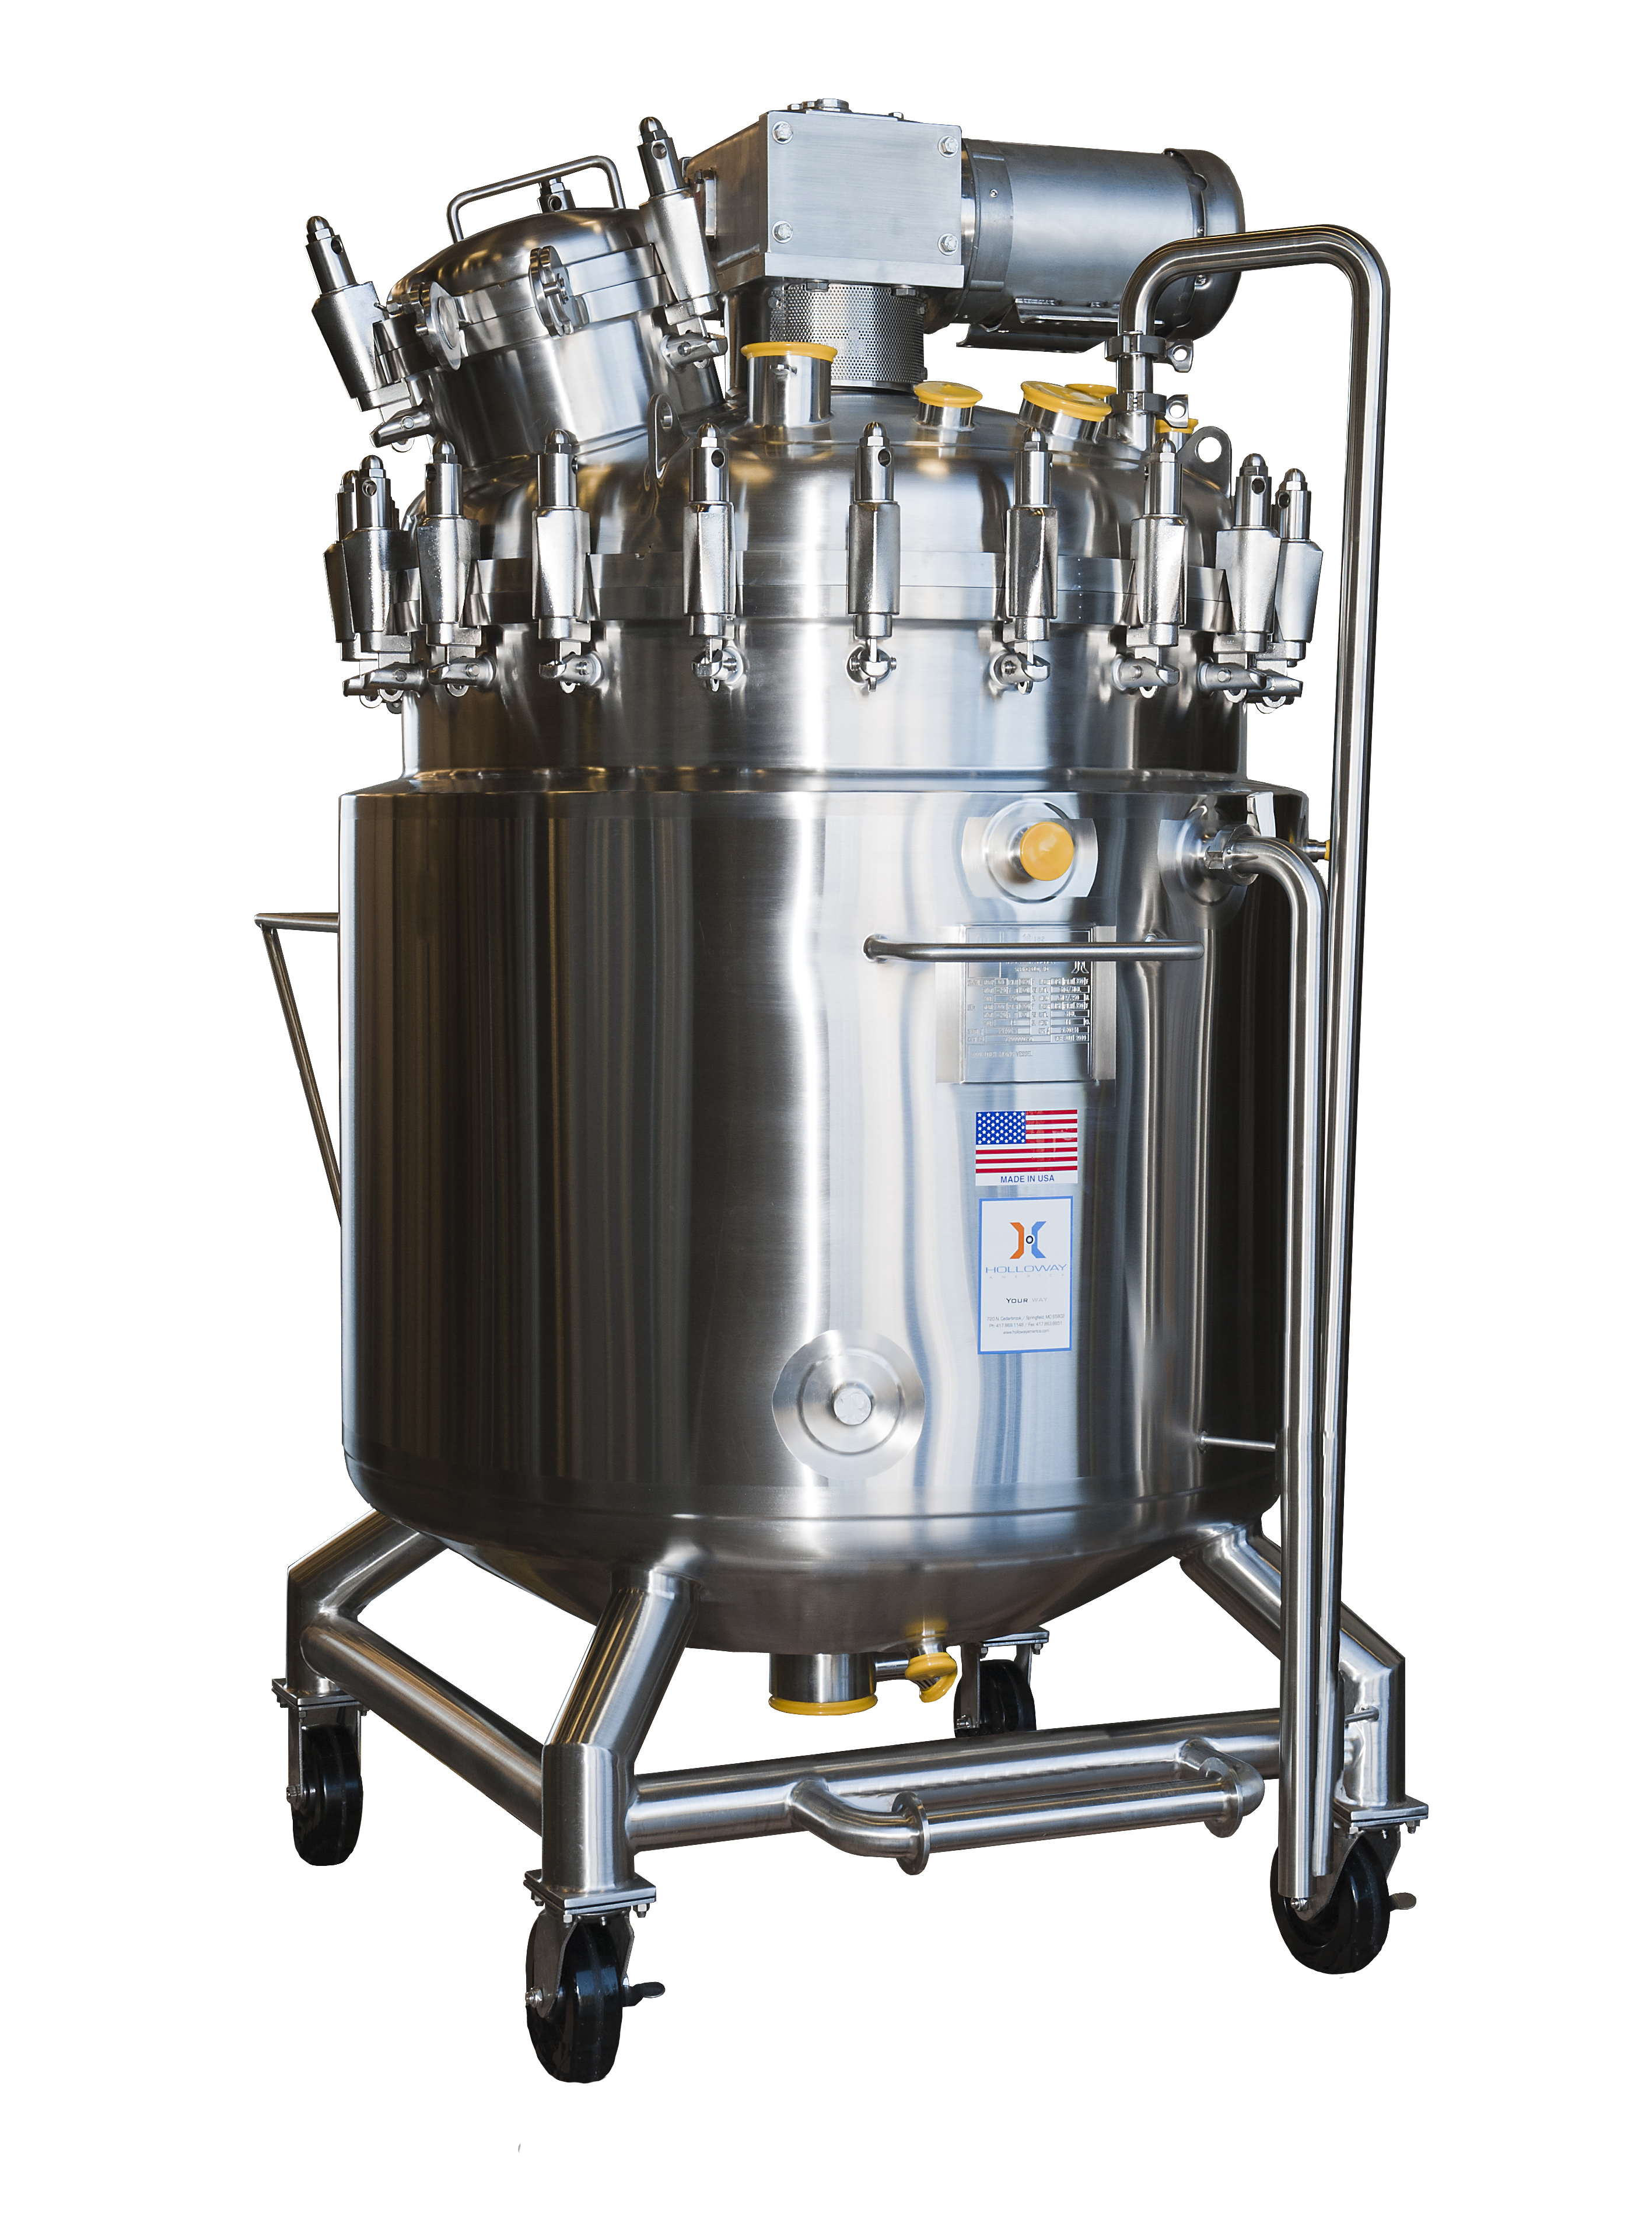 This photo shows a fermentation vessel built by HOLLOWAY AMERICA.